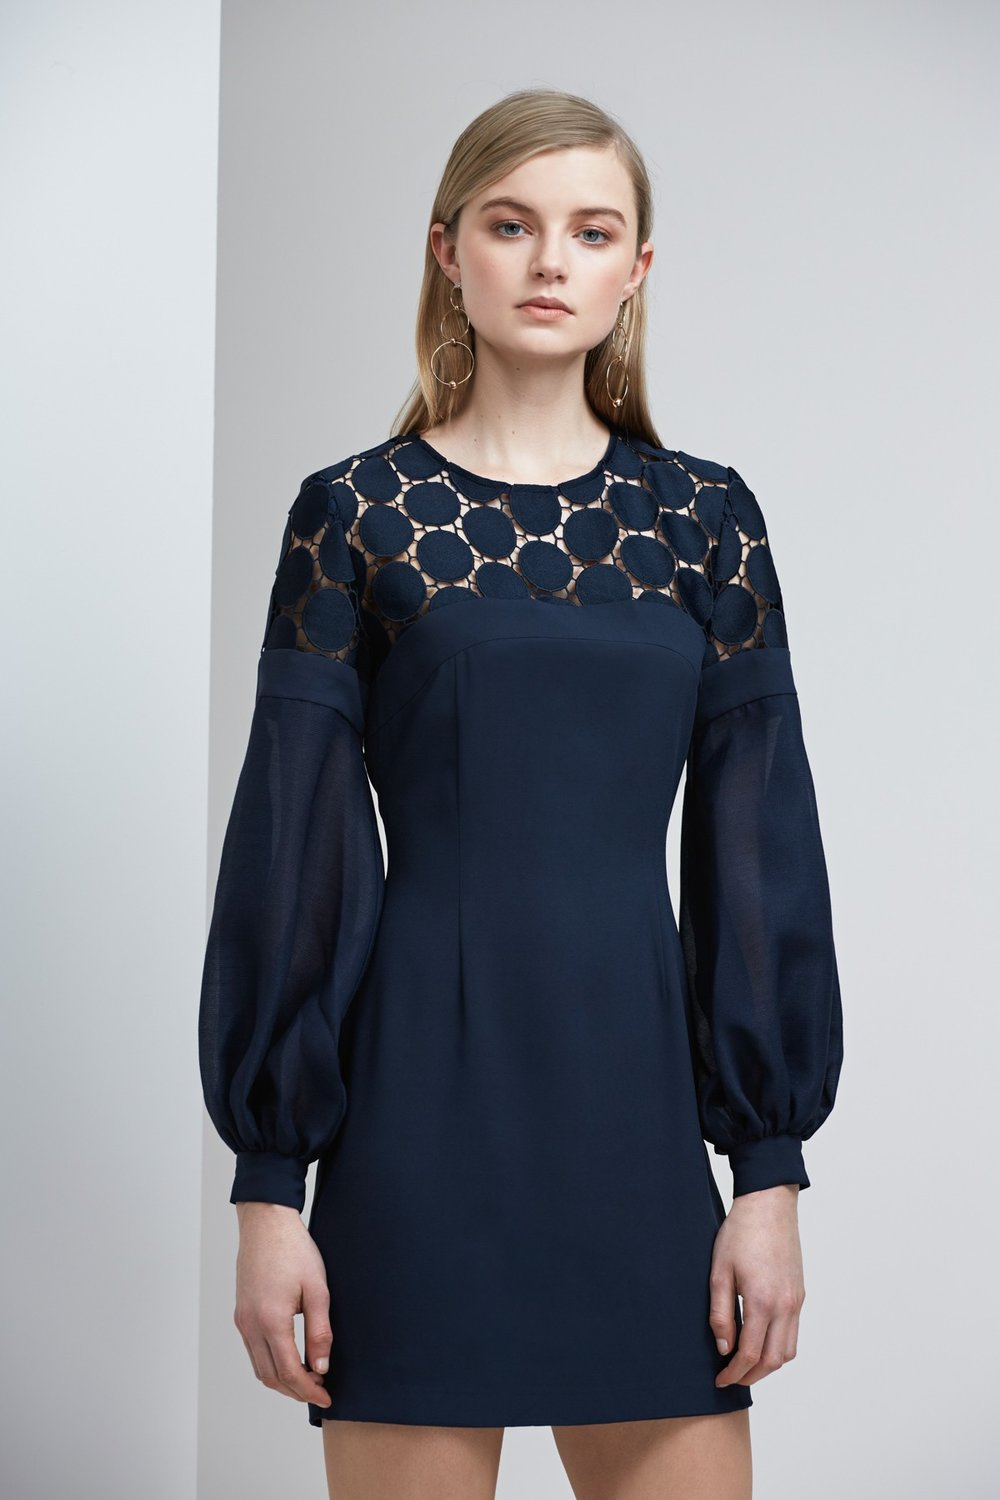 Shop Keepsake Spectrum L/S Lace Mini Dress.